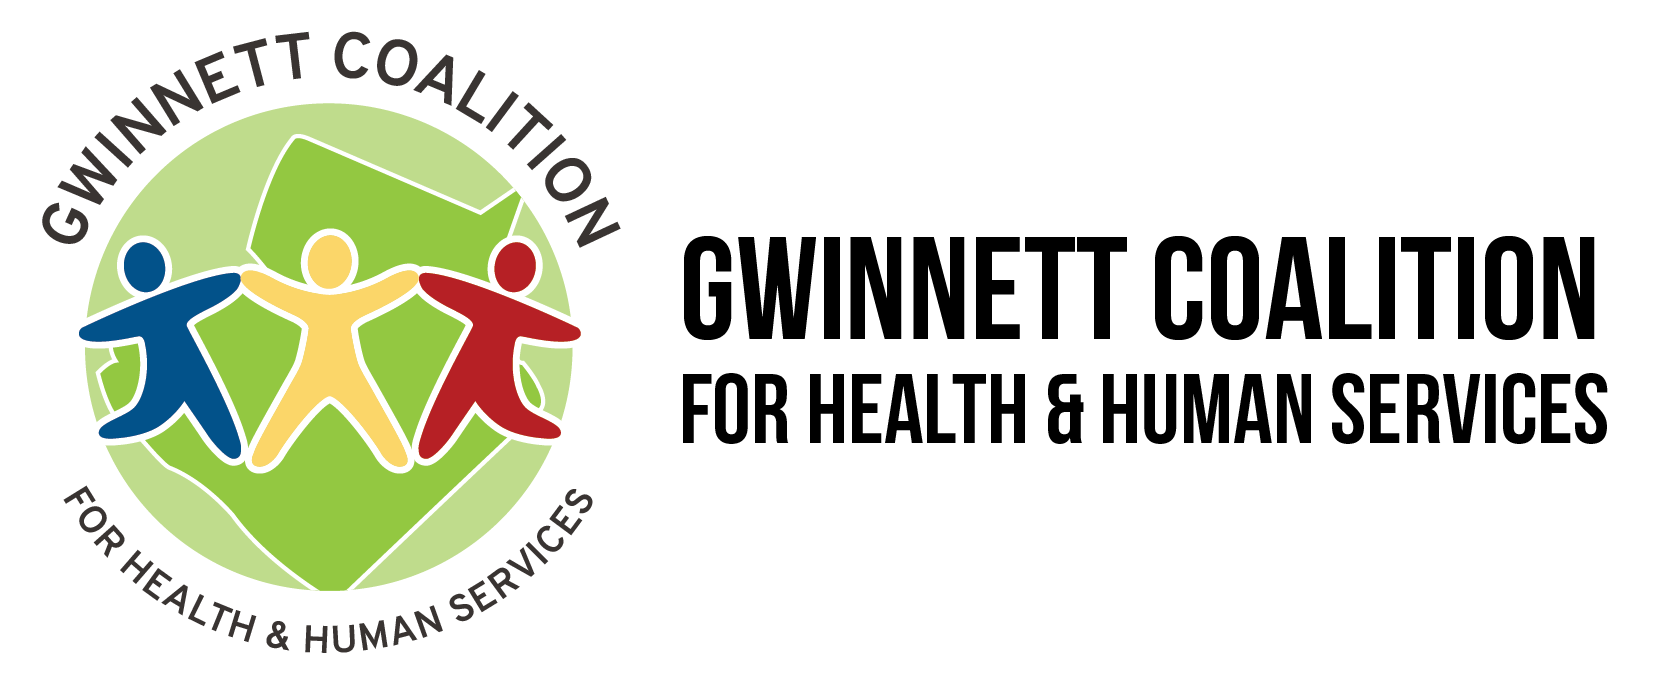 Gwinnett Coalition for Health and Human Services - The